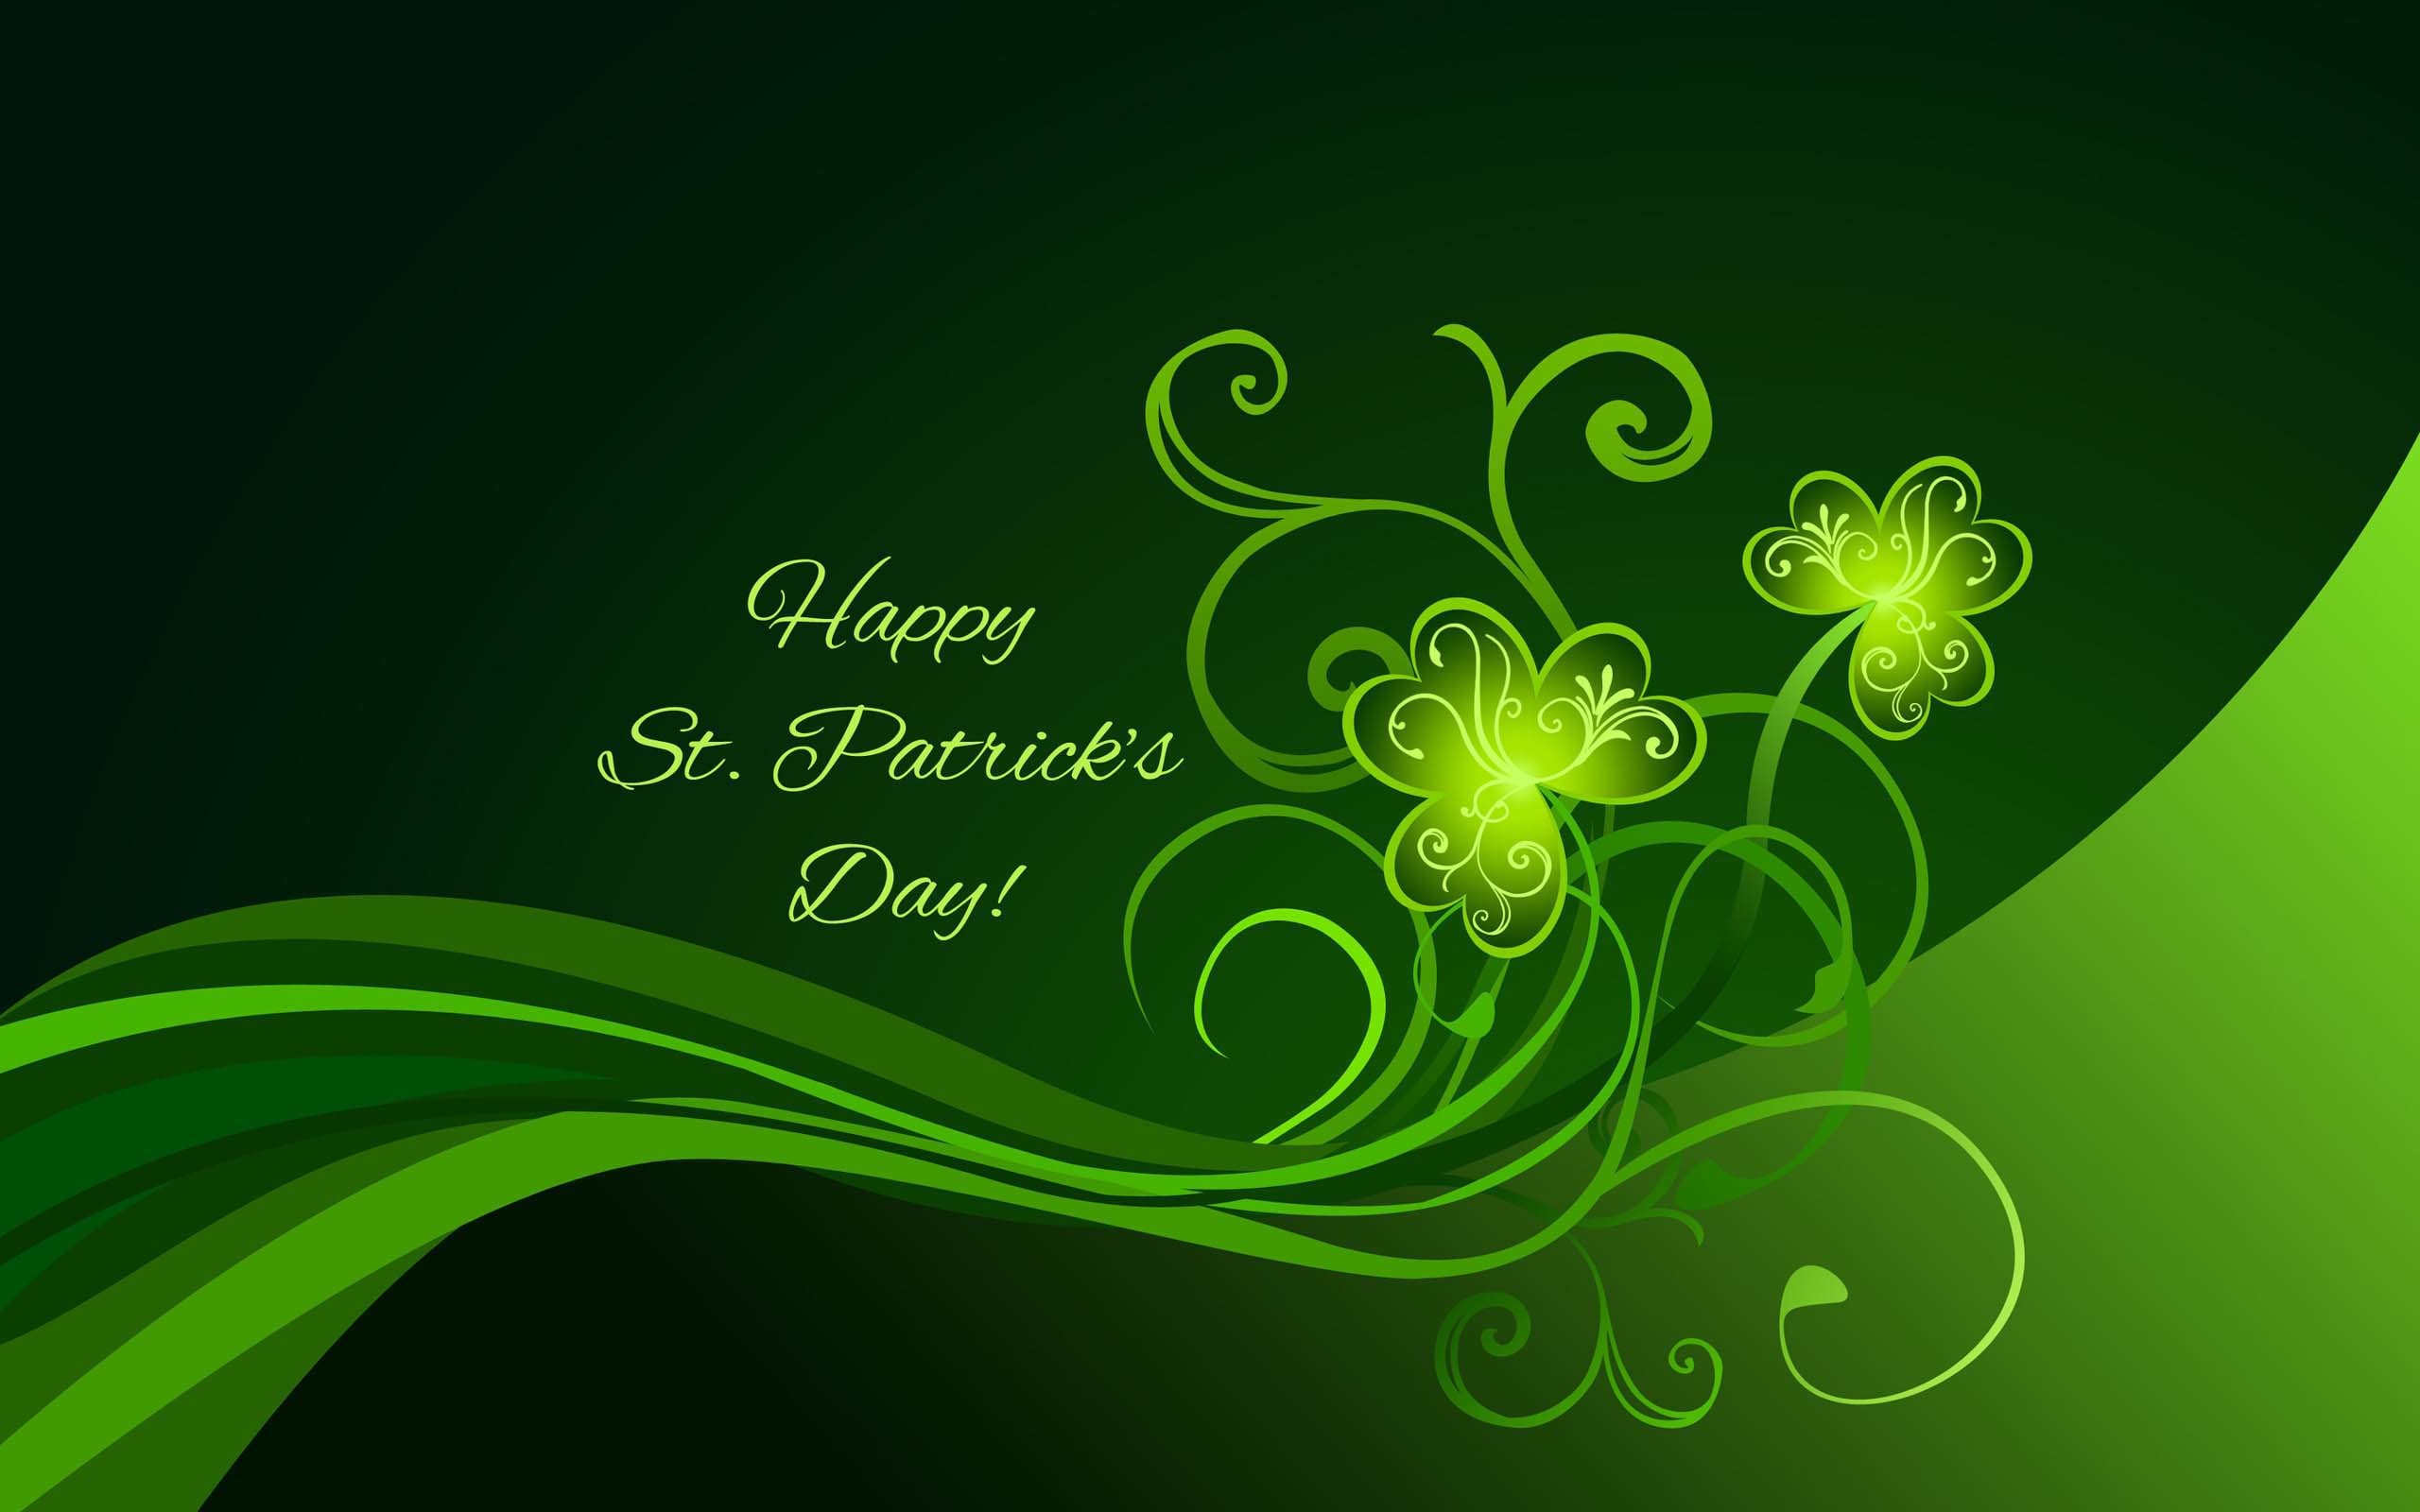 Funny St Patricks Day Wallpaper (58+ images)